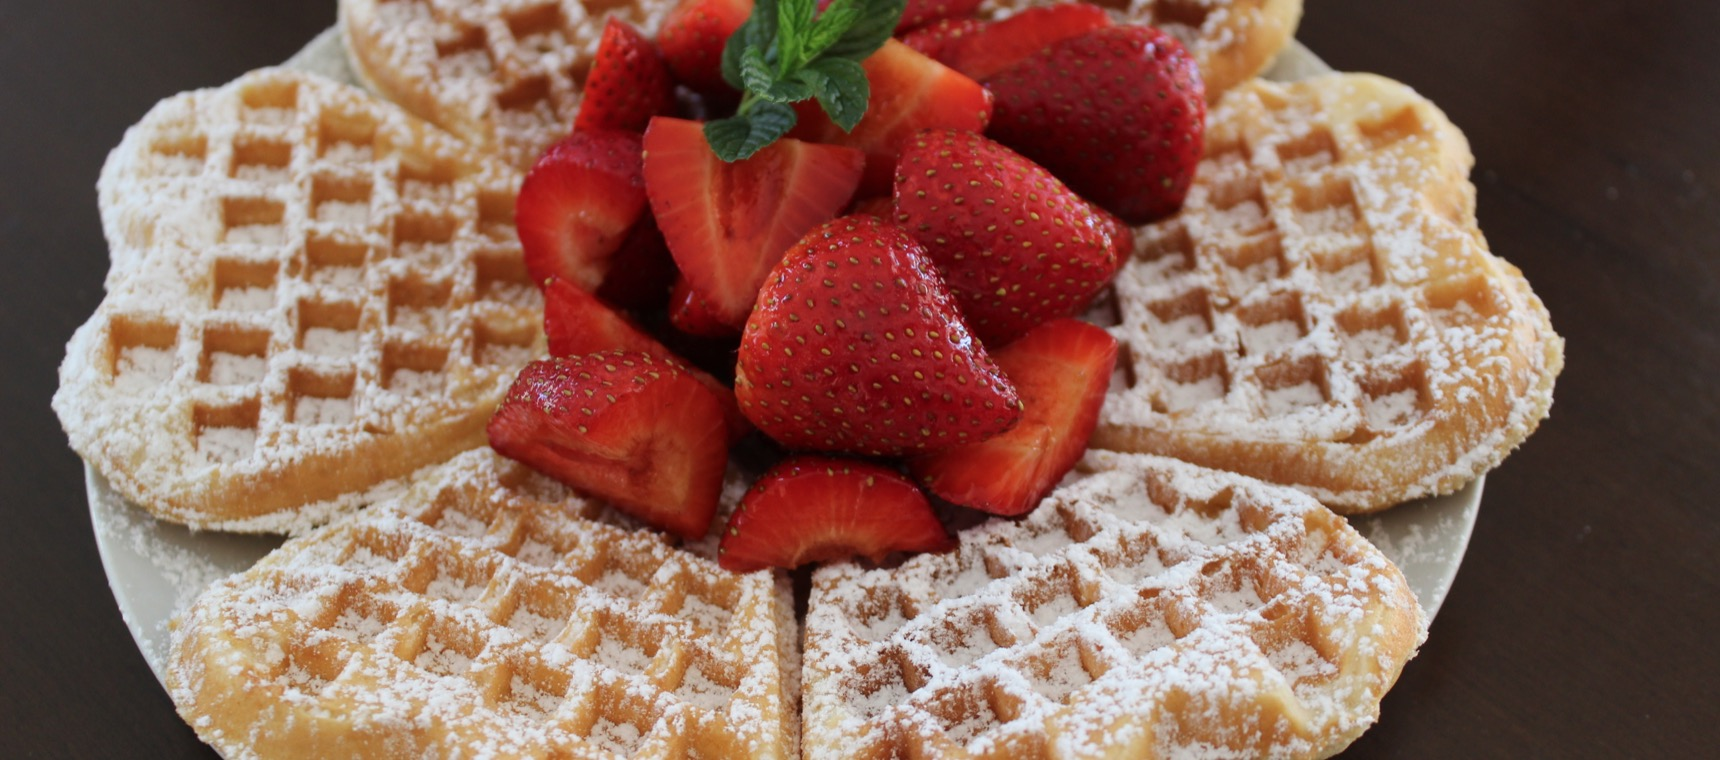 Waffles with Balsamic Strawberries